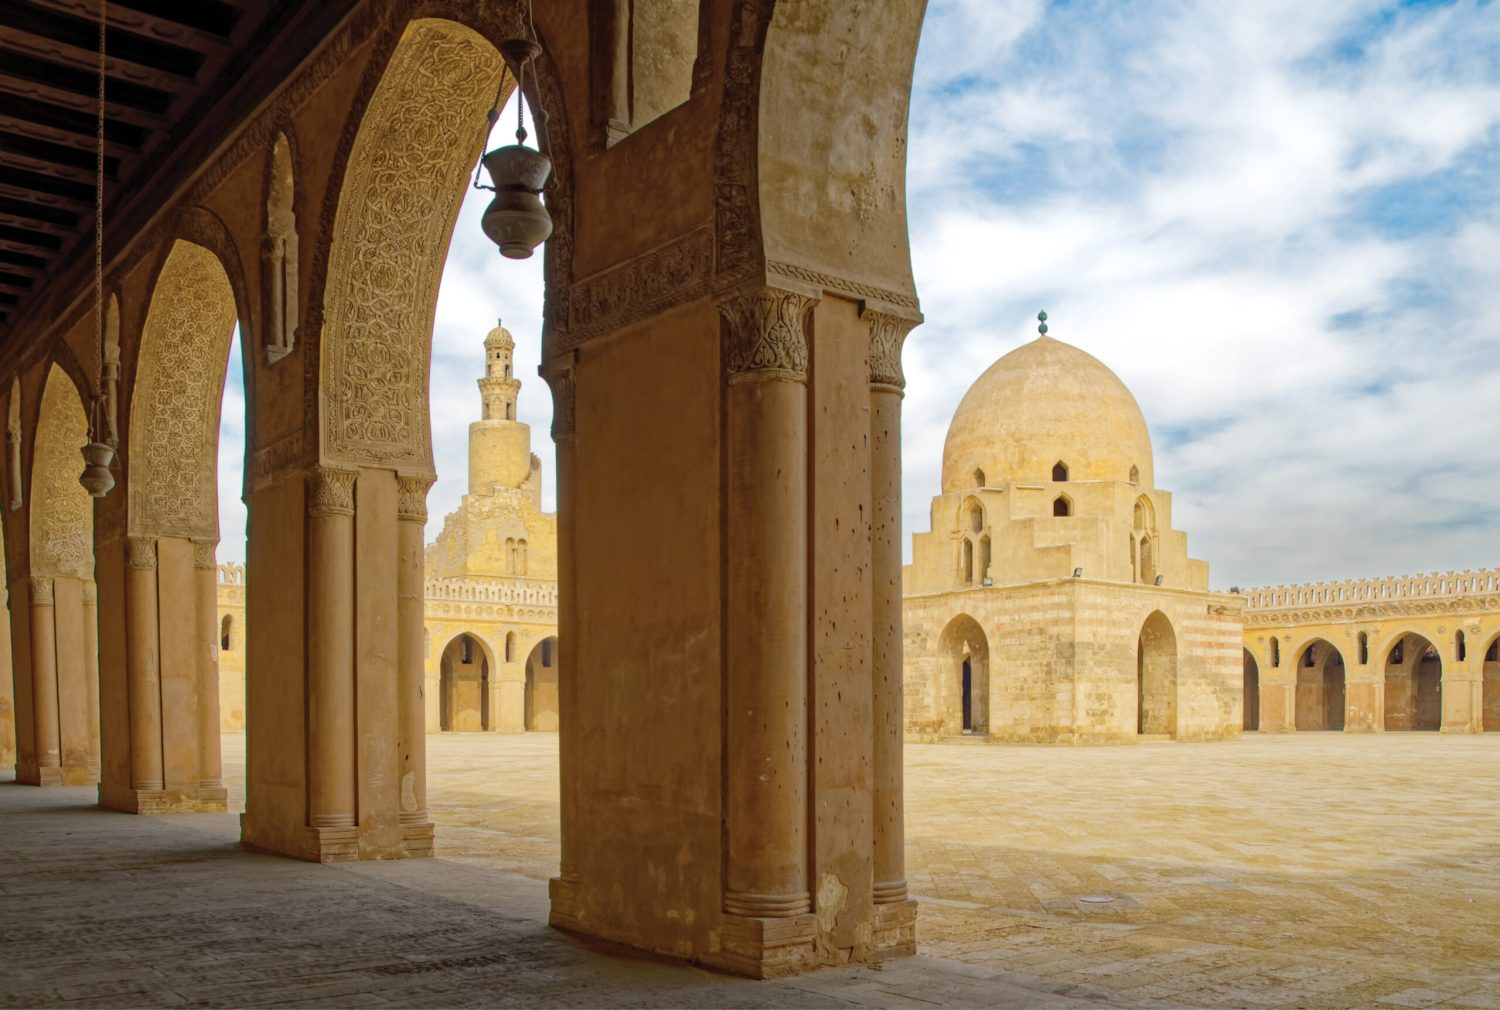 Above The serene Great Mosque of ibn Tulun, built in the 9th century, still stands in bustling modern Cairo. From the side arcades, the fountain pavilion built in 1296 by Sultan Lajin during his restoration of the mosque acts as the focus point.